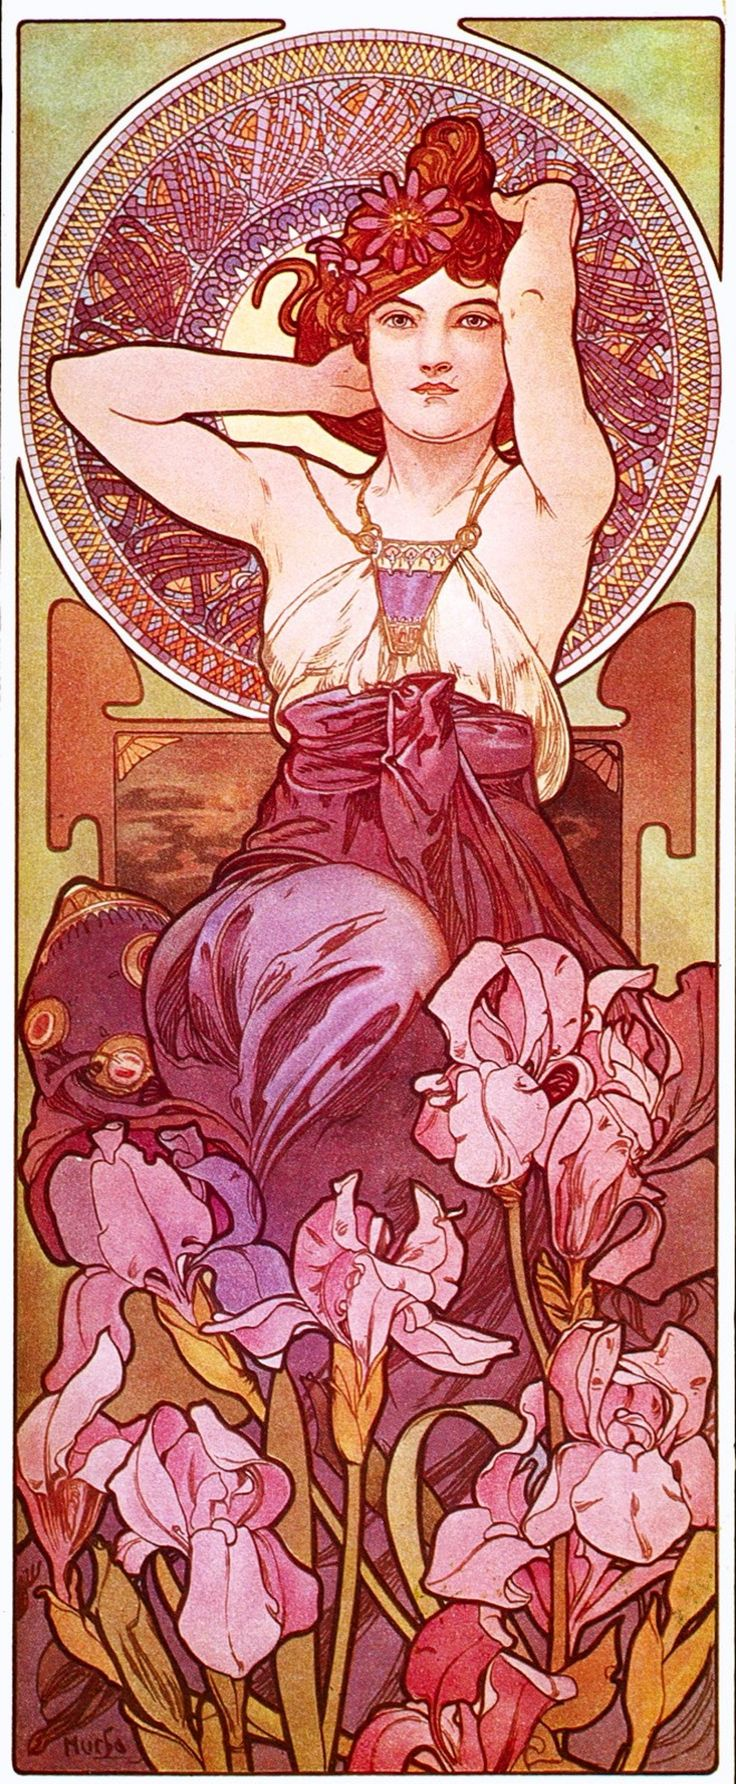 mucha series pierres amethyste 1900 dvdbash peintures alphonse mucha pinterest. Black Bedroom Furniture Sets. Home Design Ideas